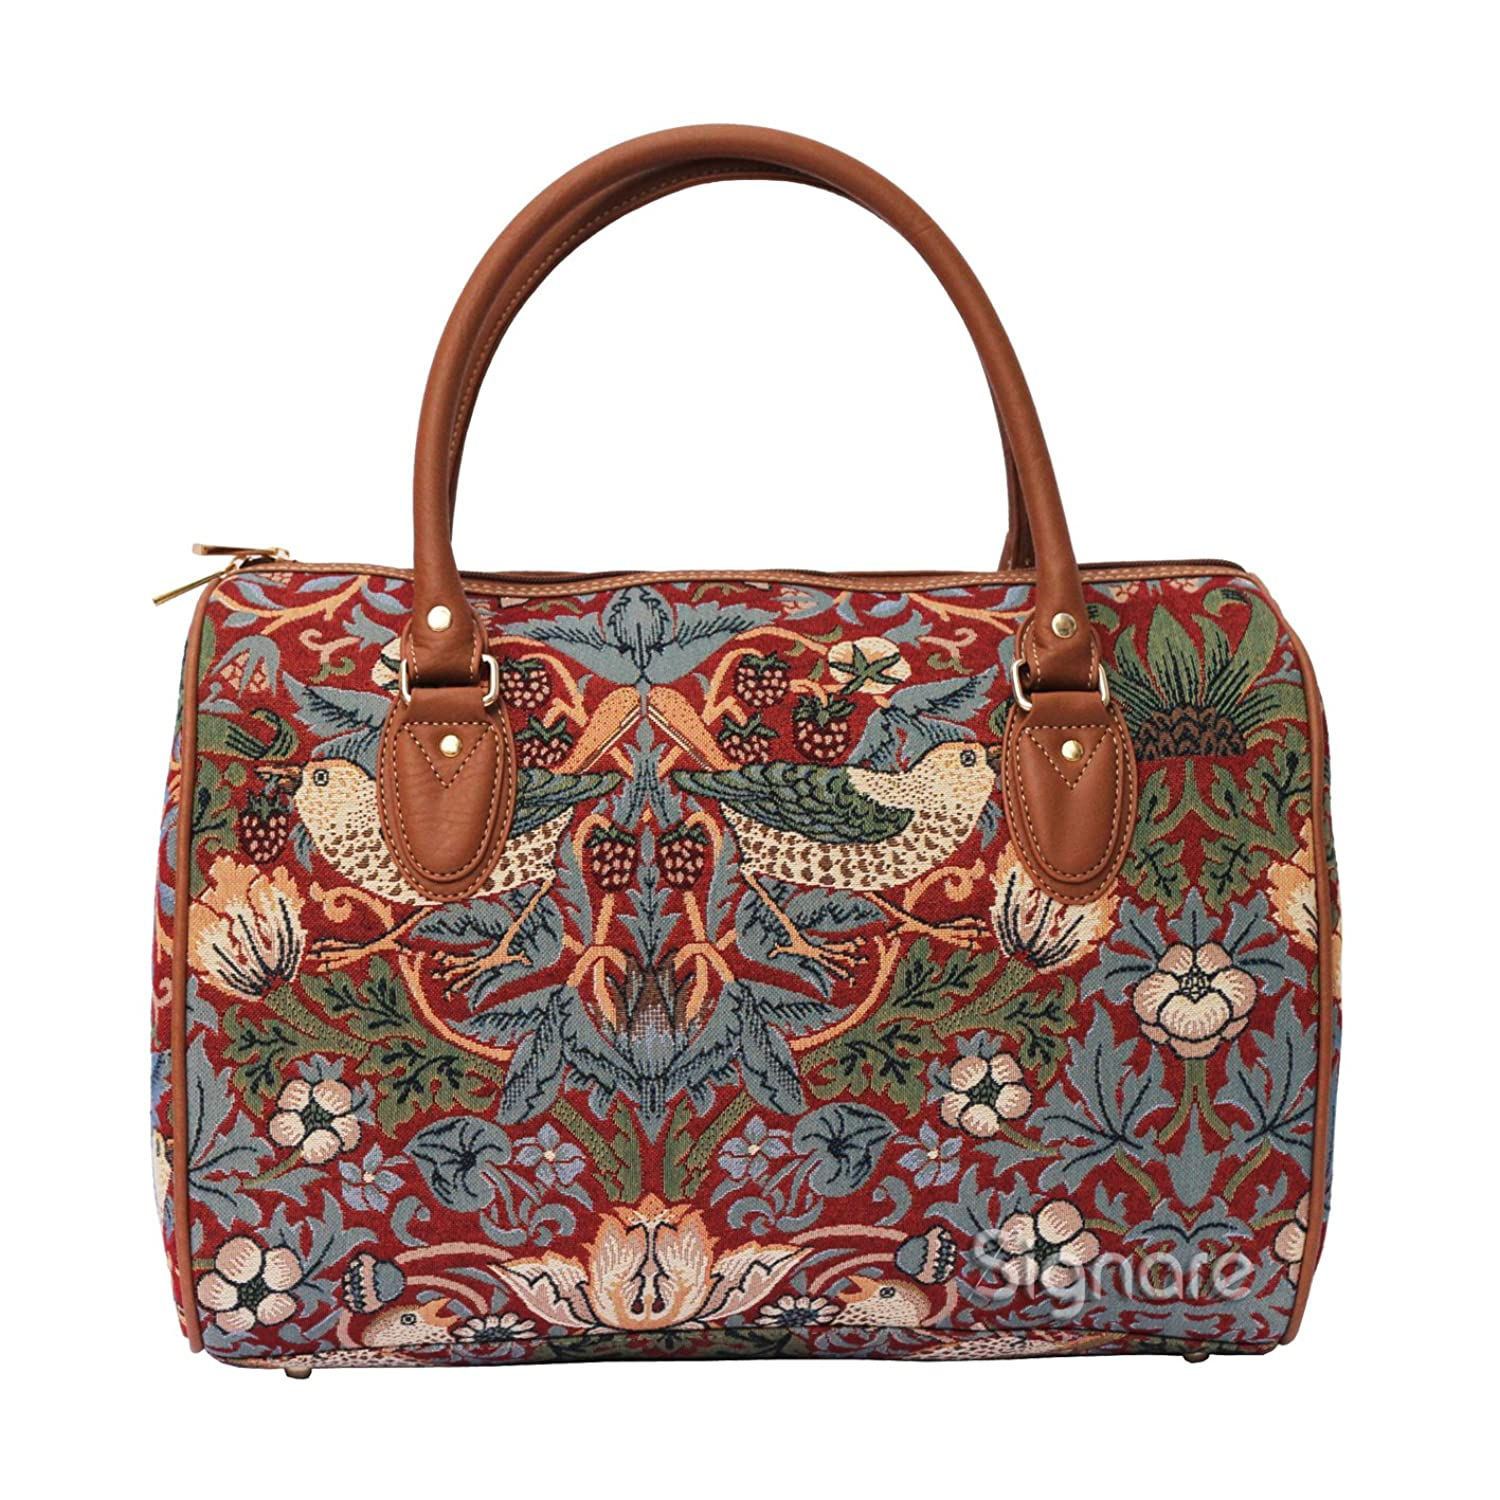 Vintage & Retro Handbags, Purses, Wallets, Bags Designer William Morris Travel Bag by Signare with Flower and Bird by Signare $39.99 AT vintagedancer.com